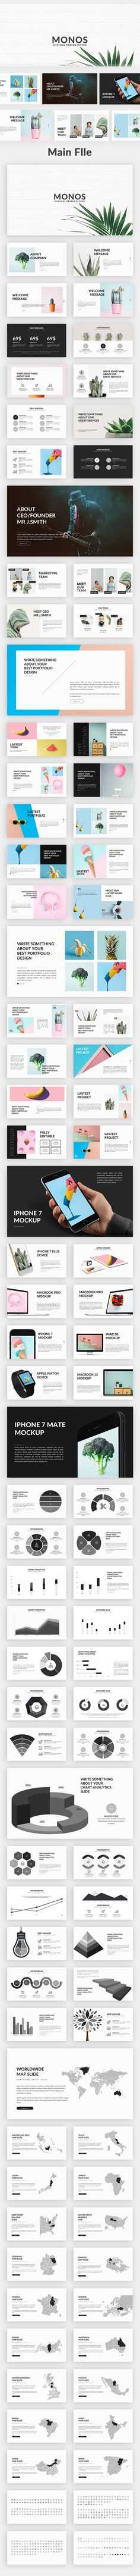 Infographics , UI Design et Web Design - Monos - Minimal Powerpoint Template - Presentation Templa. Web Design, Slide Design, Book Design, Layout Design, Keynote Presentation, Presentation Deck, Presentation Templates, Portfolio Presentation, Power Point Template